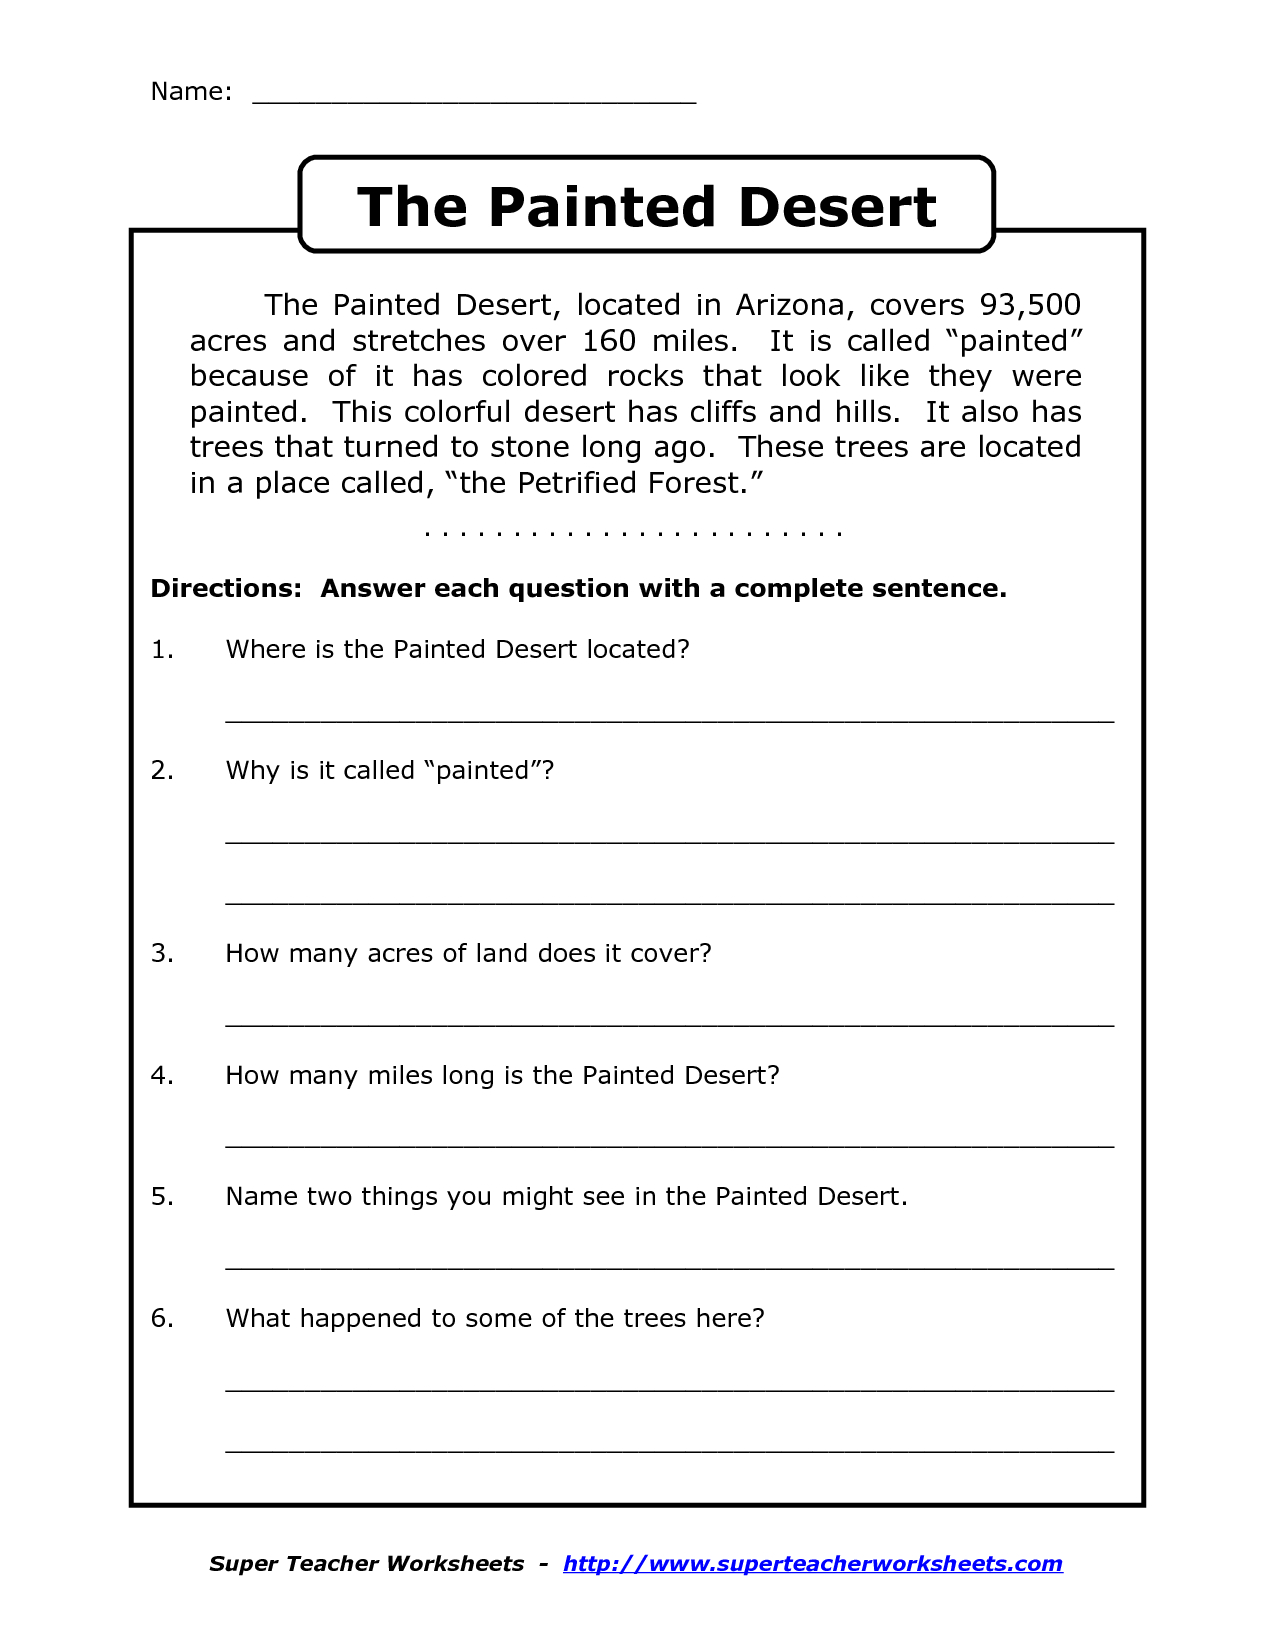 Reading Worksheets For 4Th Grade | Reading Comprehension Worksheets - Third Grade Reading Worksheets Free Printable